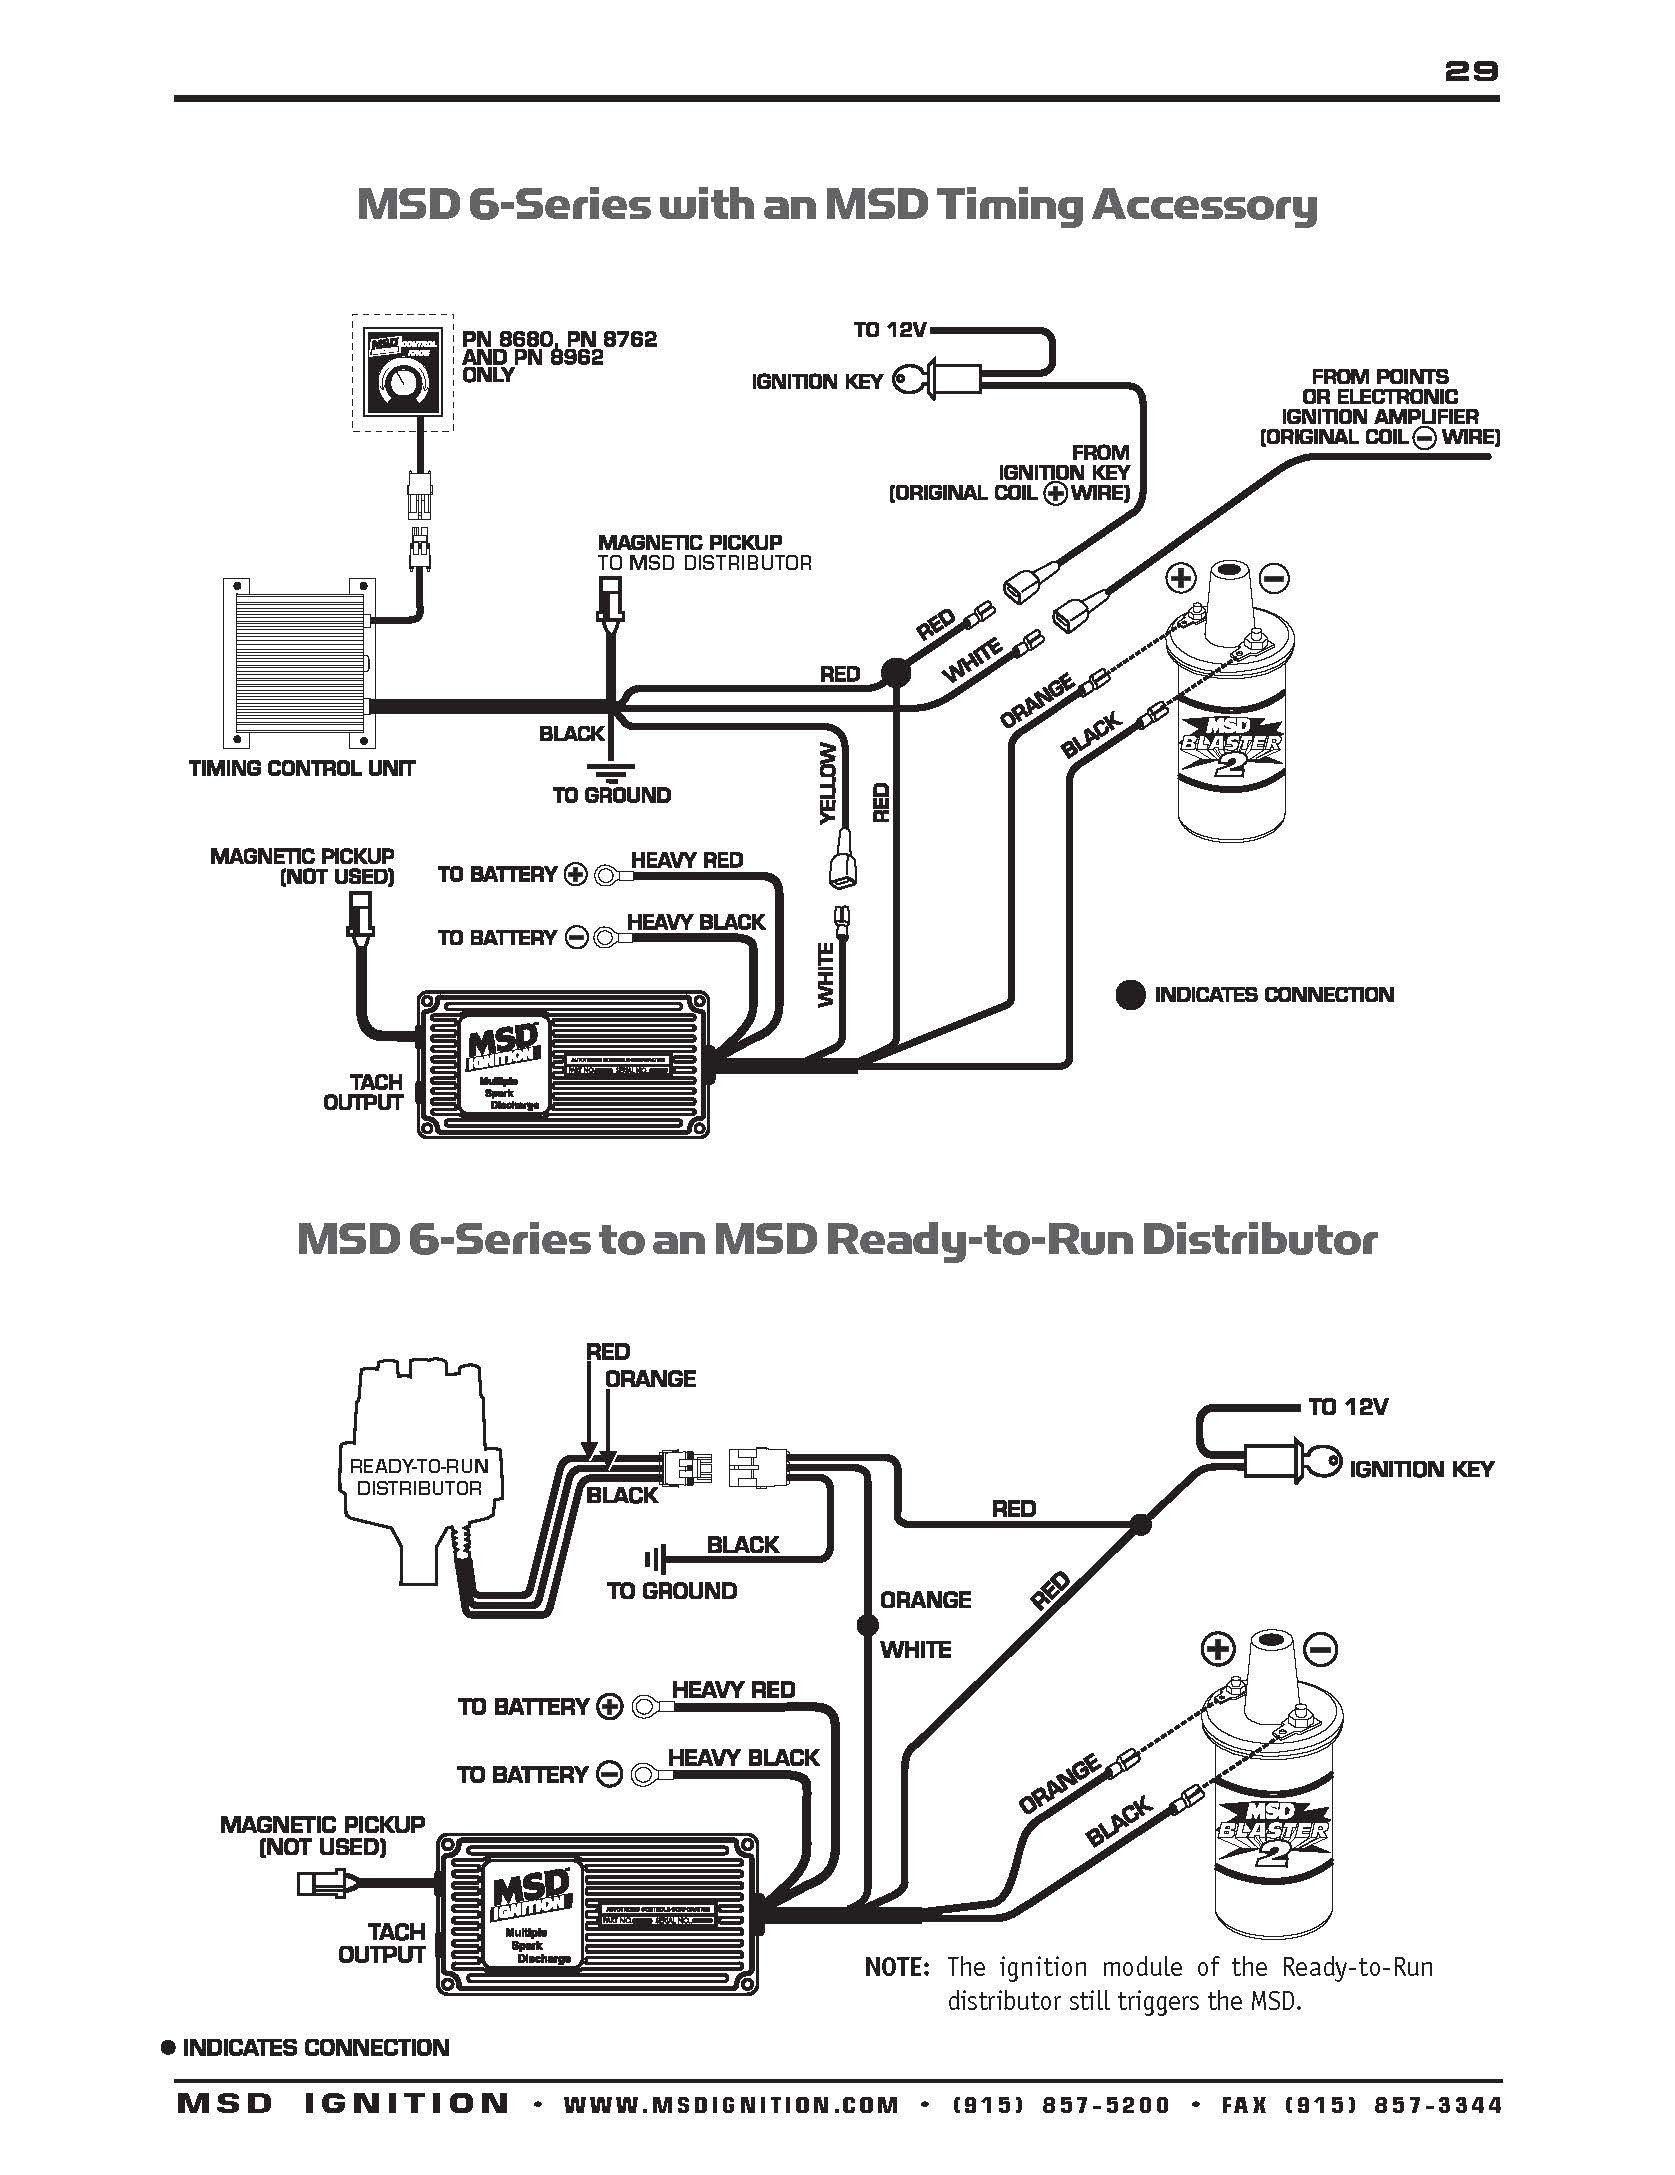 Msd Ignition System Wiring Diagram New Msd Ignition Wiring Diagrams with Distributor Diagram to Wiring